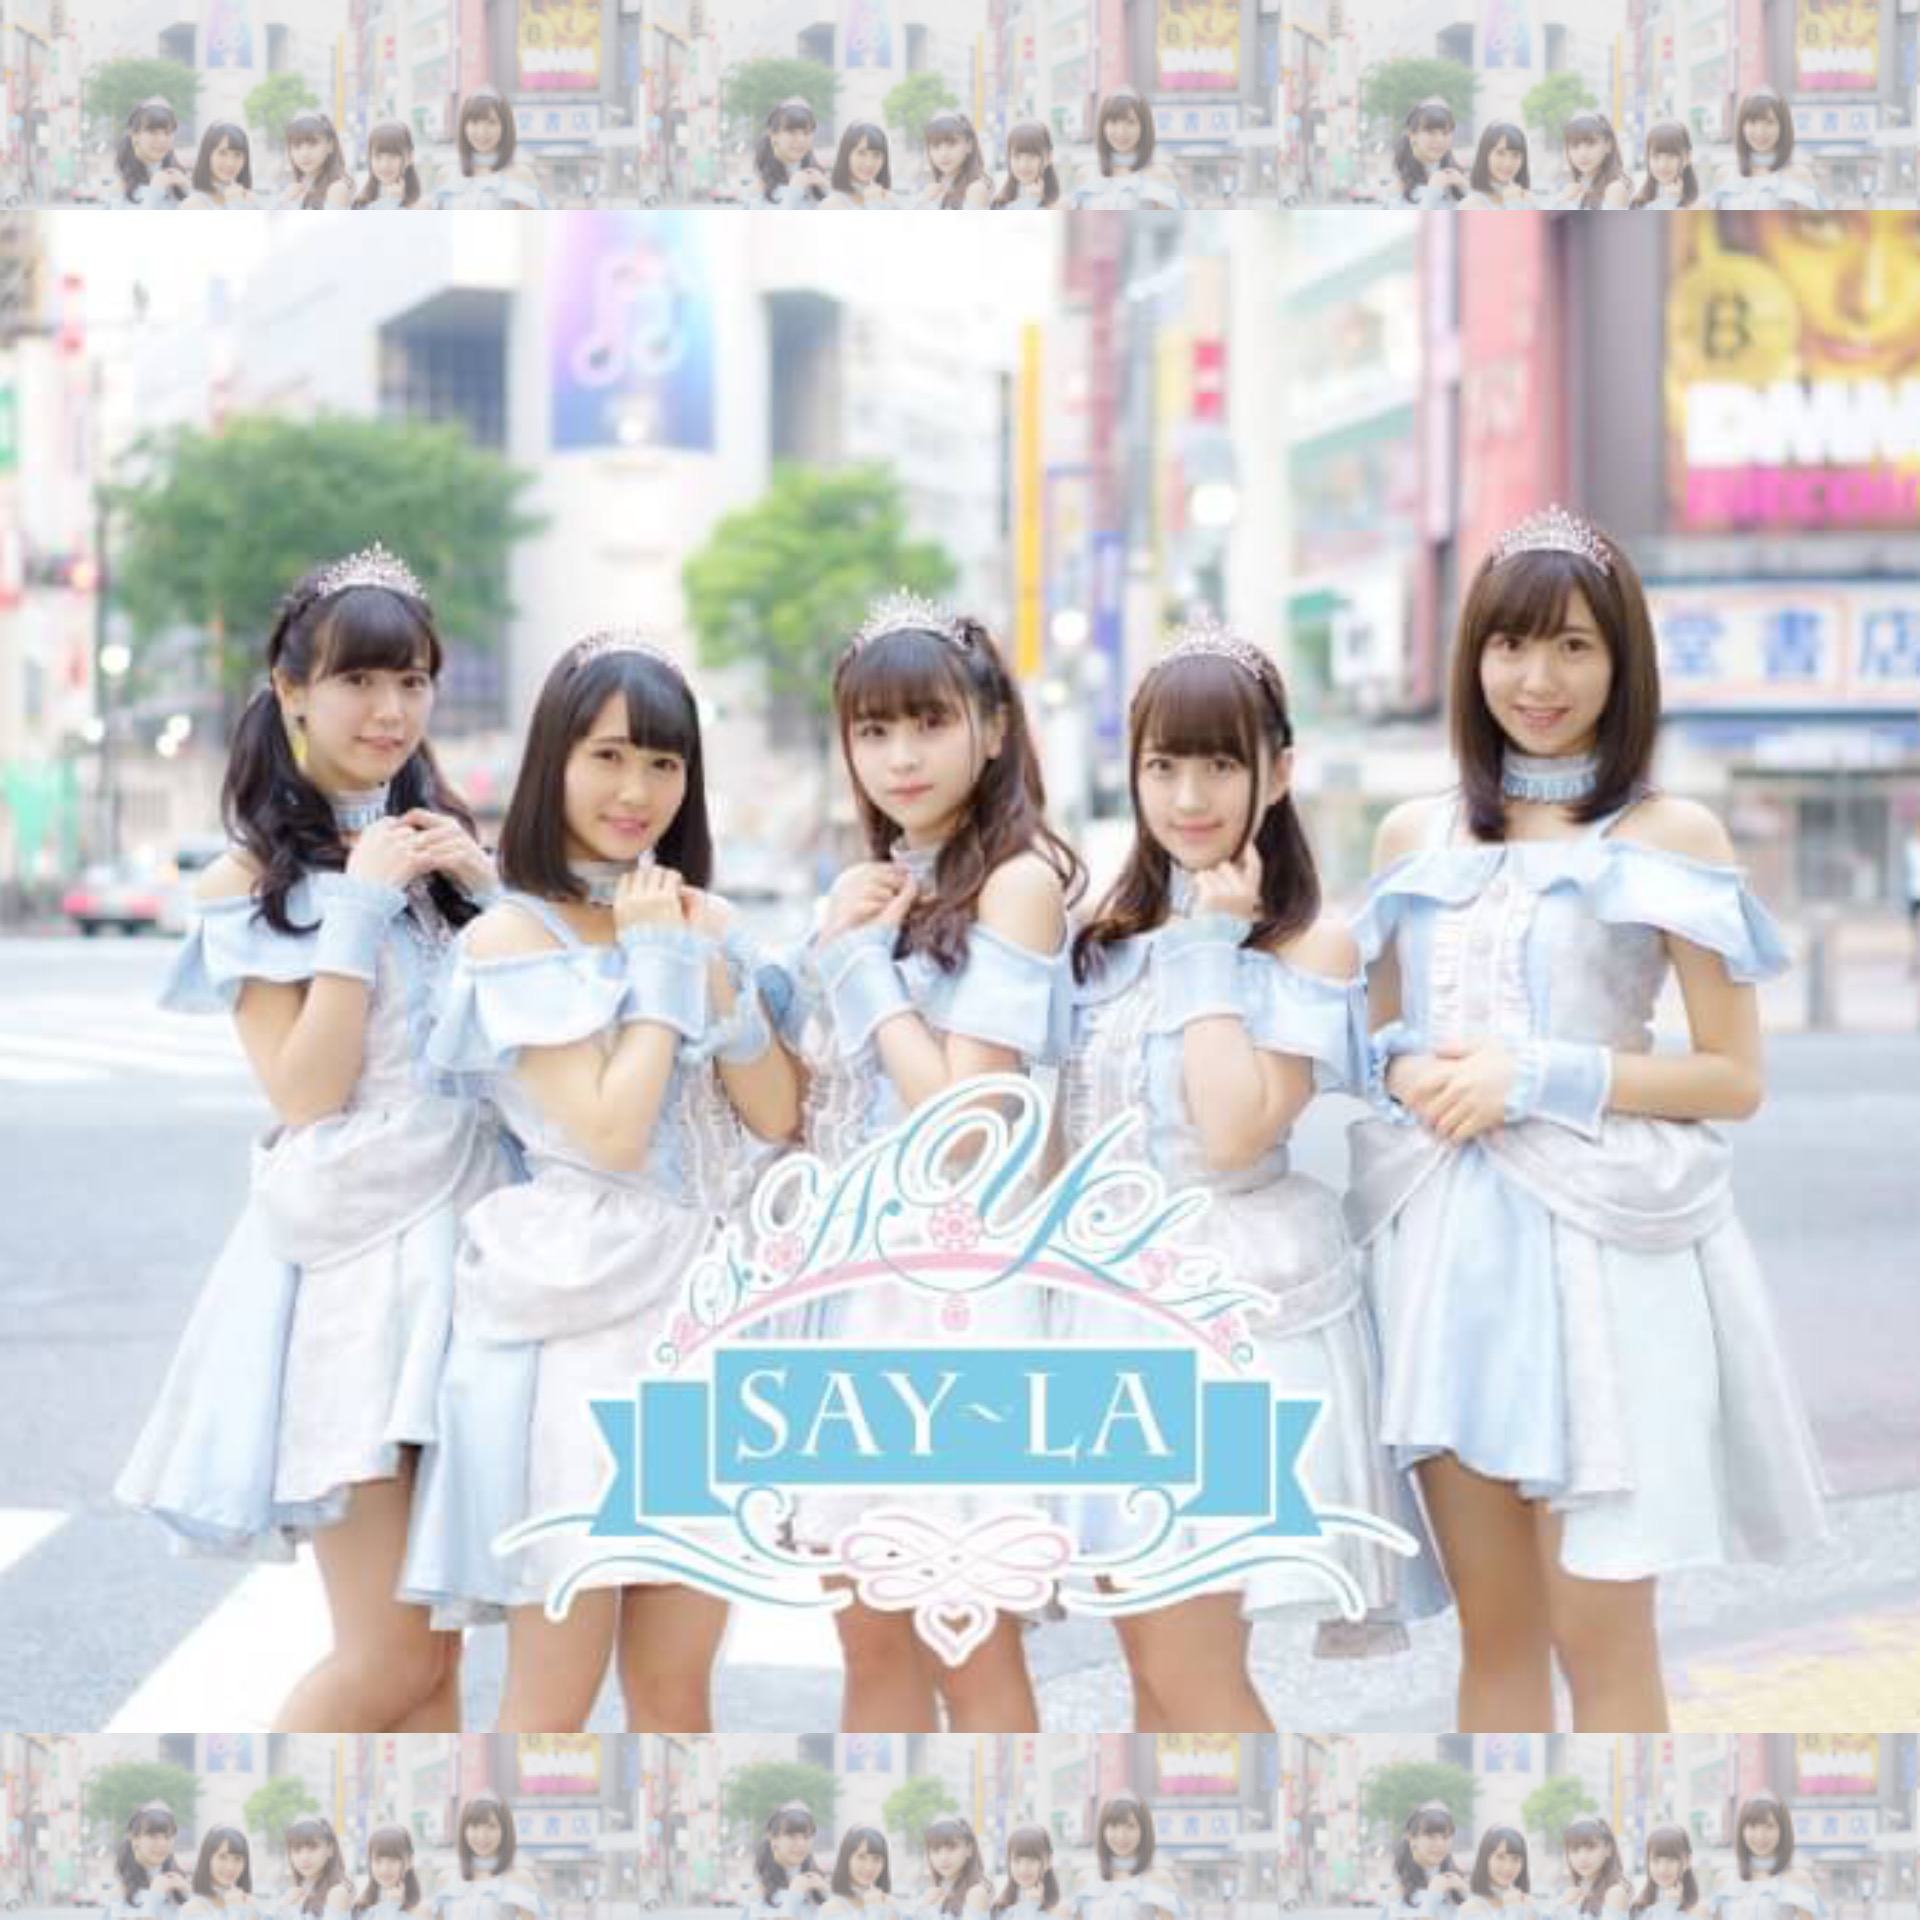 レコチョク presents SAY-LA 渋谷TSUTAYA O-EAST 単独公演 supported by WIZY